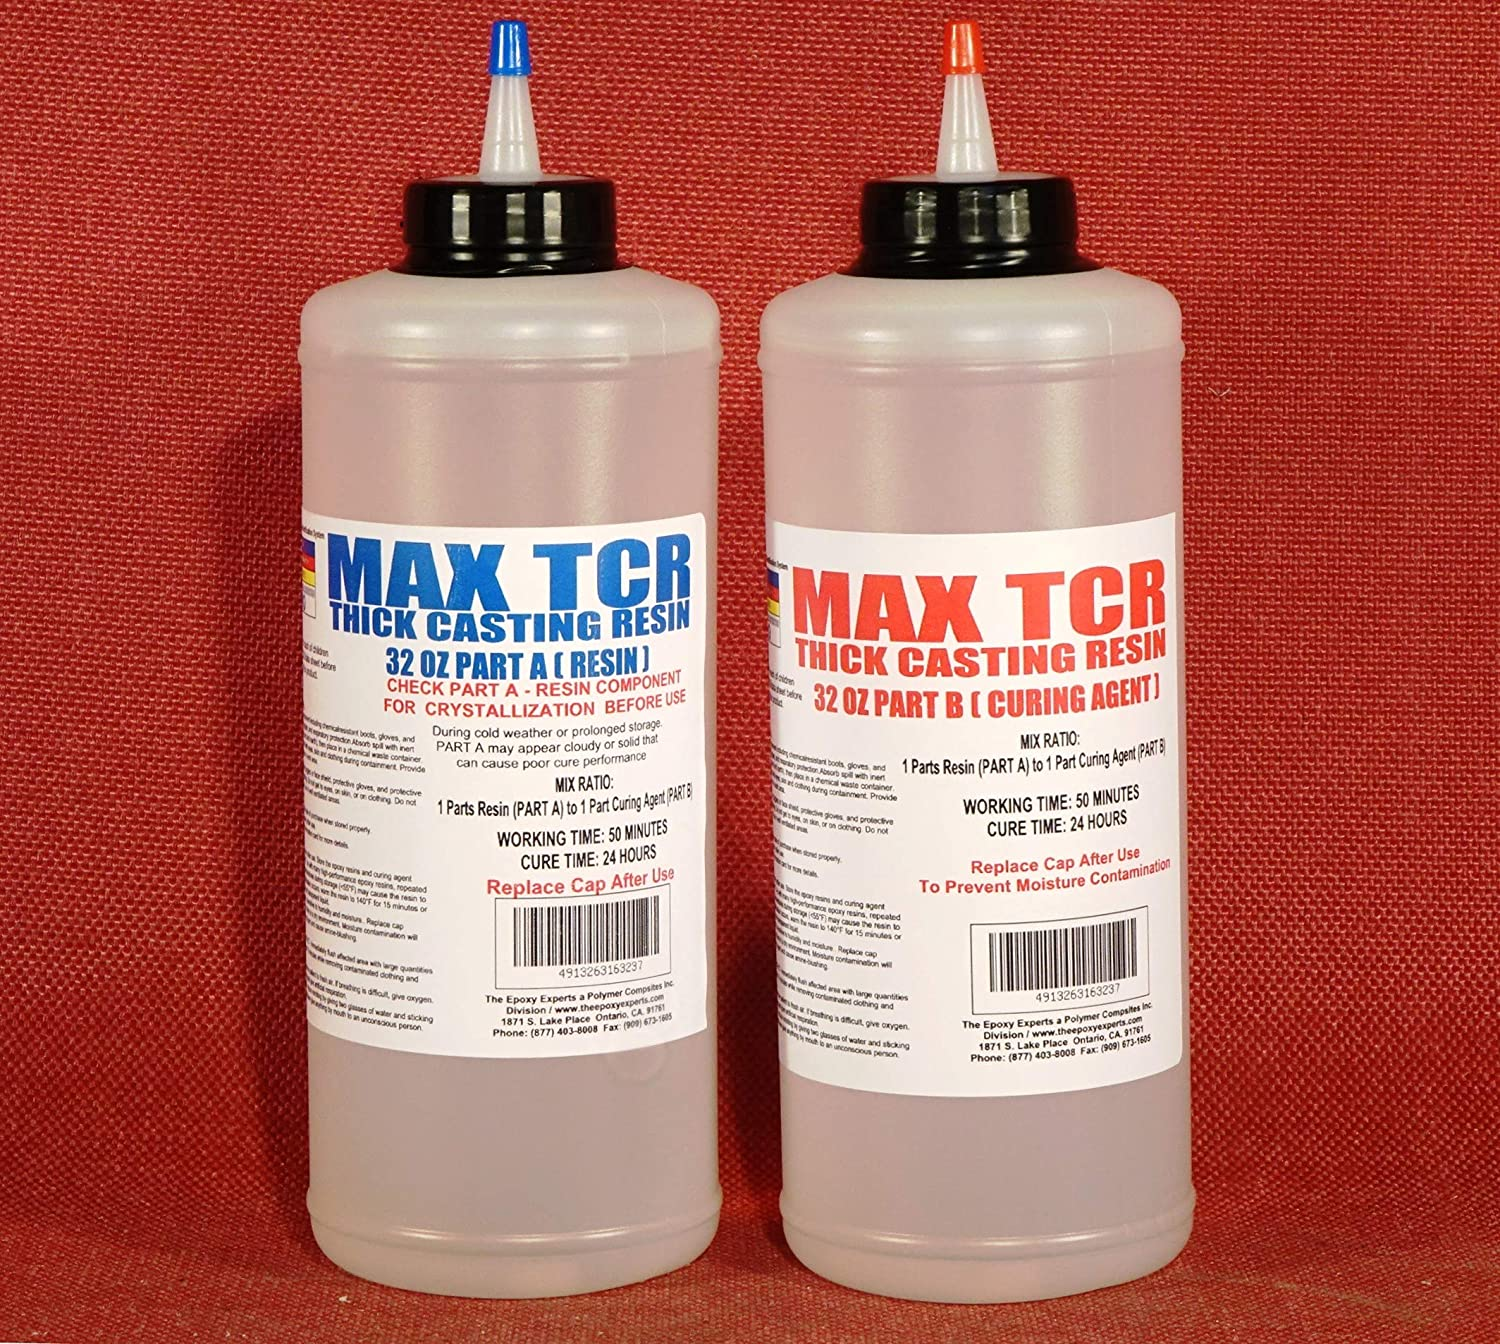 Floral Cast Epoxy Resin - MAX TCR A/B - Creates Water Simulation for Flower Arranging -Thick Casting Resin, Crystal Clear, Flexible, Room Temperature Cure - MAX TCR A/B 1/2 Gallon Kit